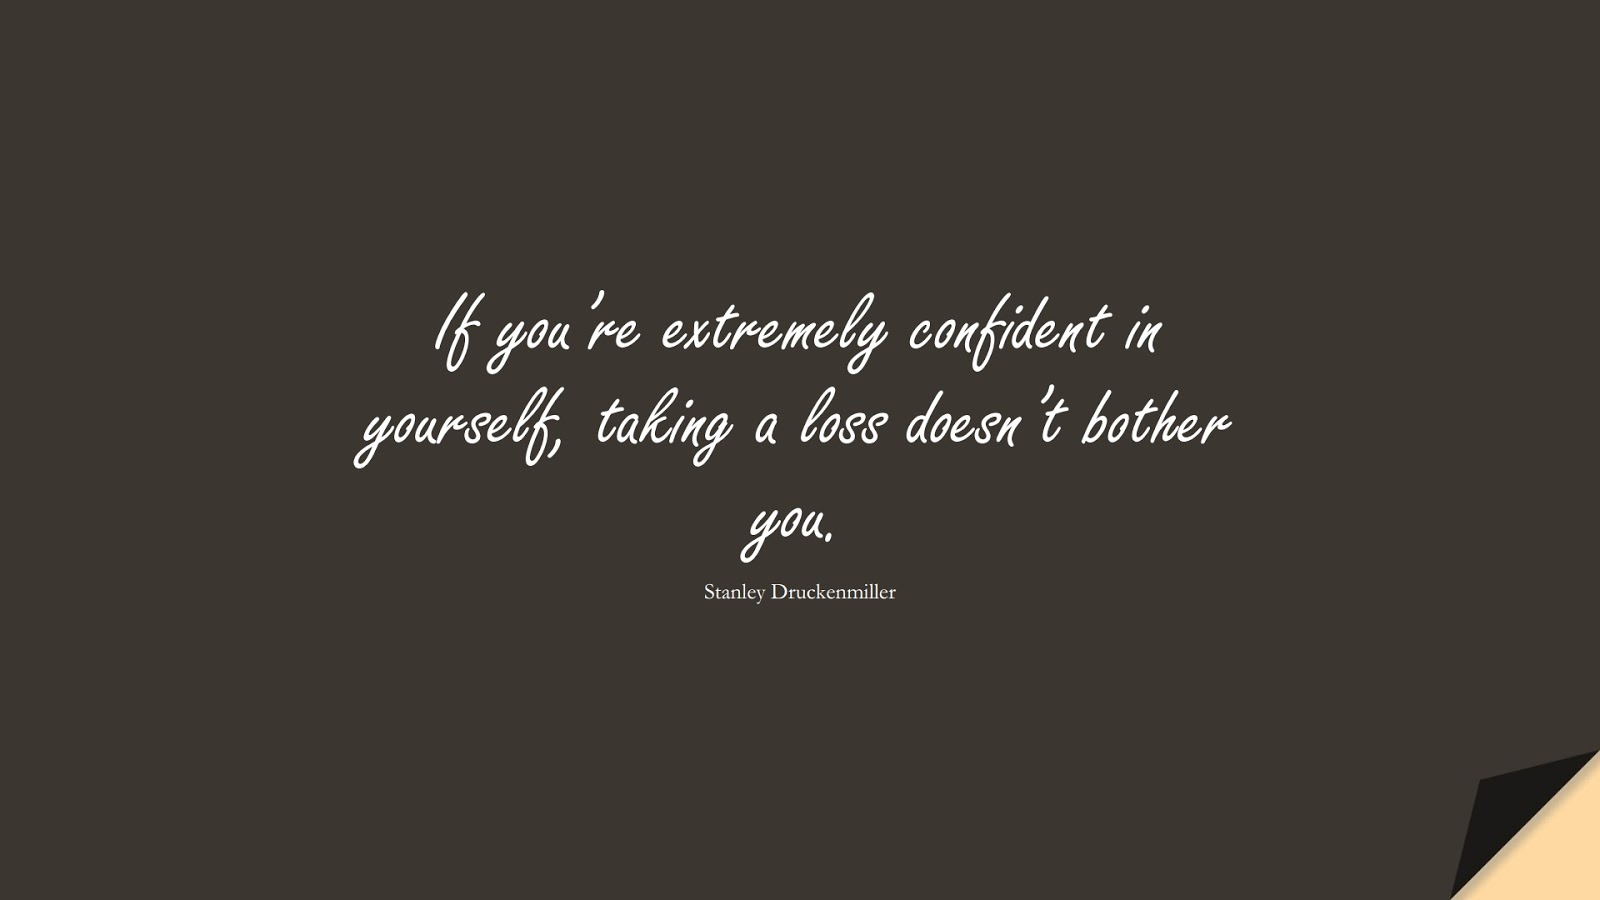 If you're extremely confident in yourself, taking a loss doesn't bother you. (Stanley Druckenmiller);  #SelfEsteemQuotes